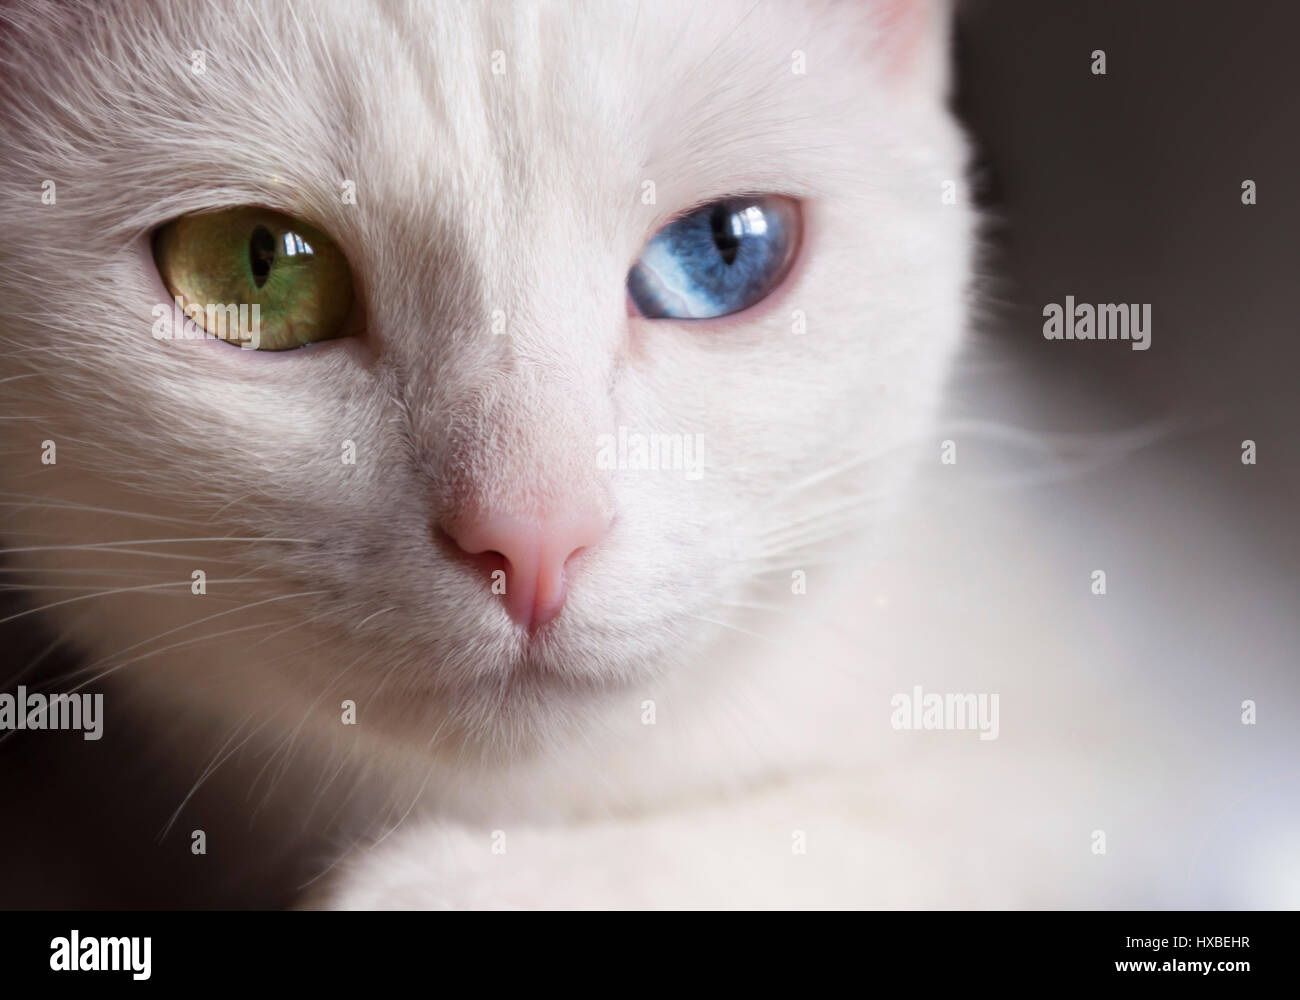 Odd Eyed Cat High Resolution Stock Photography And Images Alamy